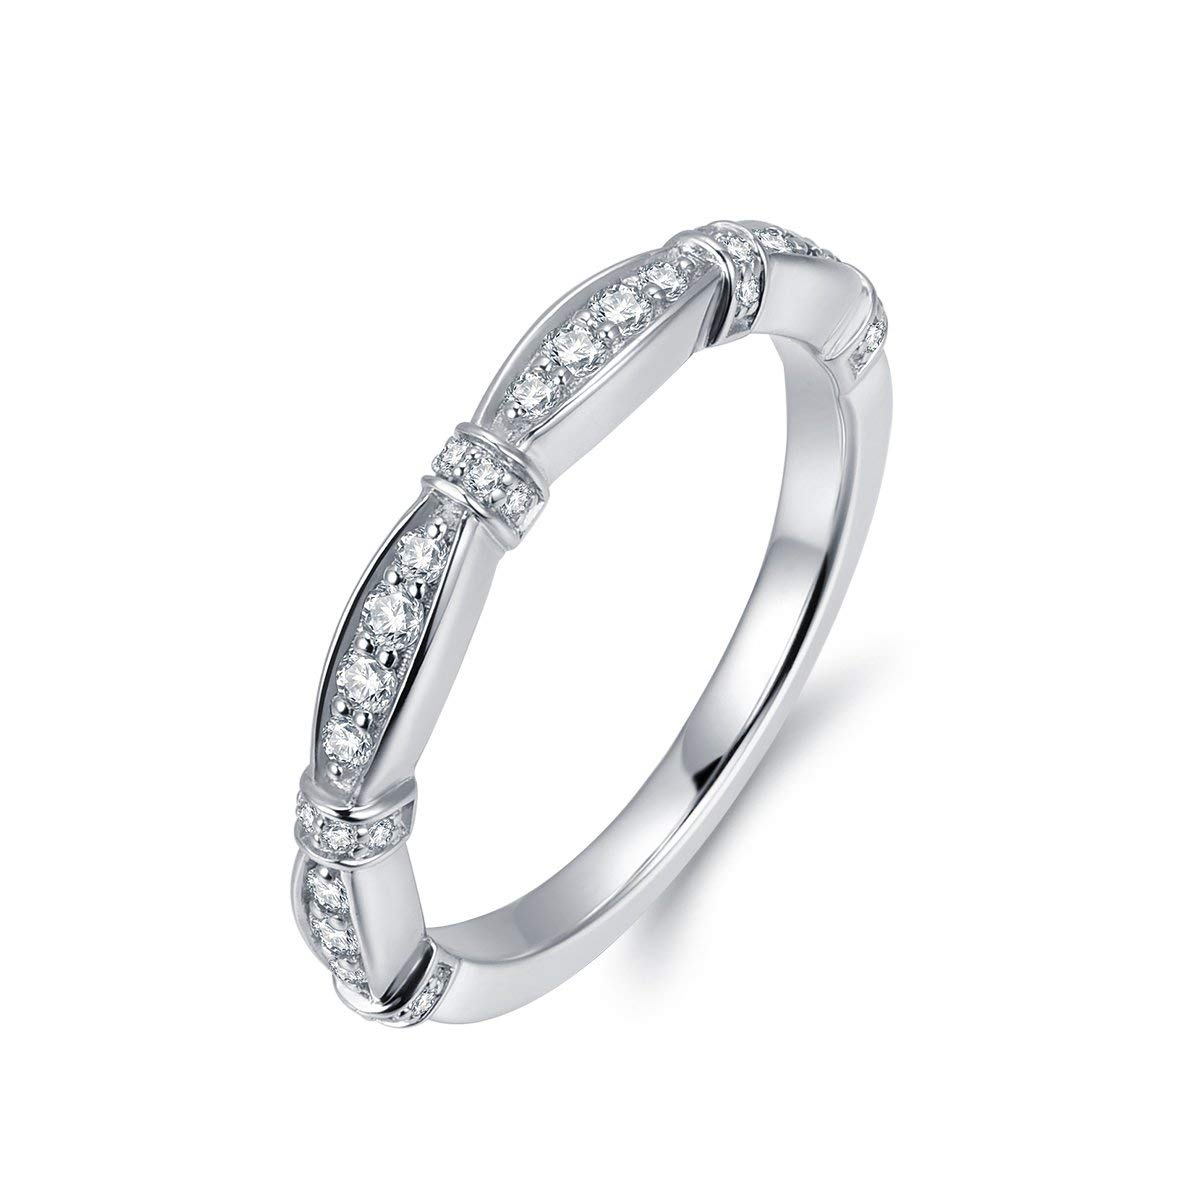 Hafeez Center New Marquise Design 2mm Micropave Simulated Diamond Cubic Zirconia CZ Wedding Band Eternity Ring for Women and Girls, Rhodium Plated Sterling Silver (7)